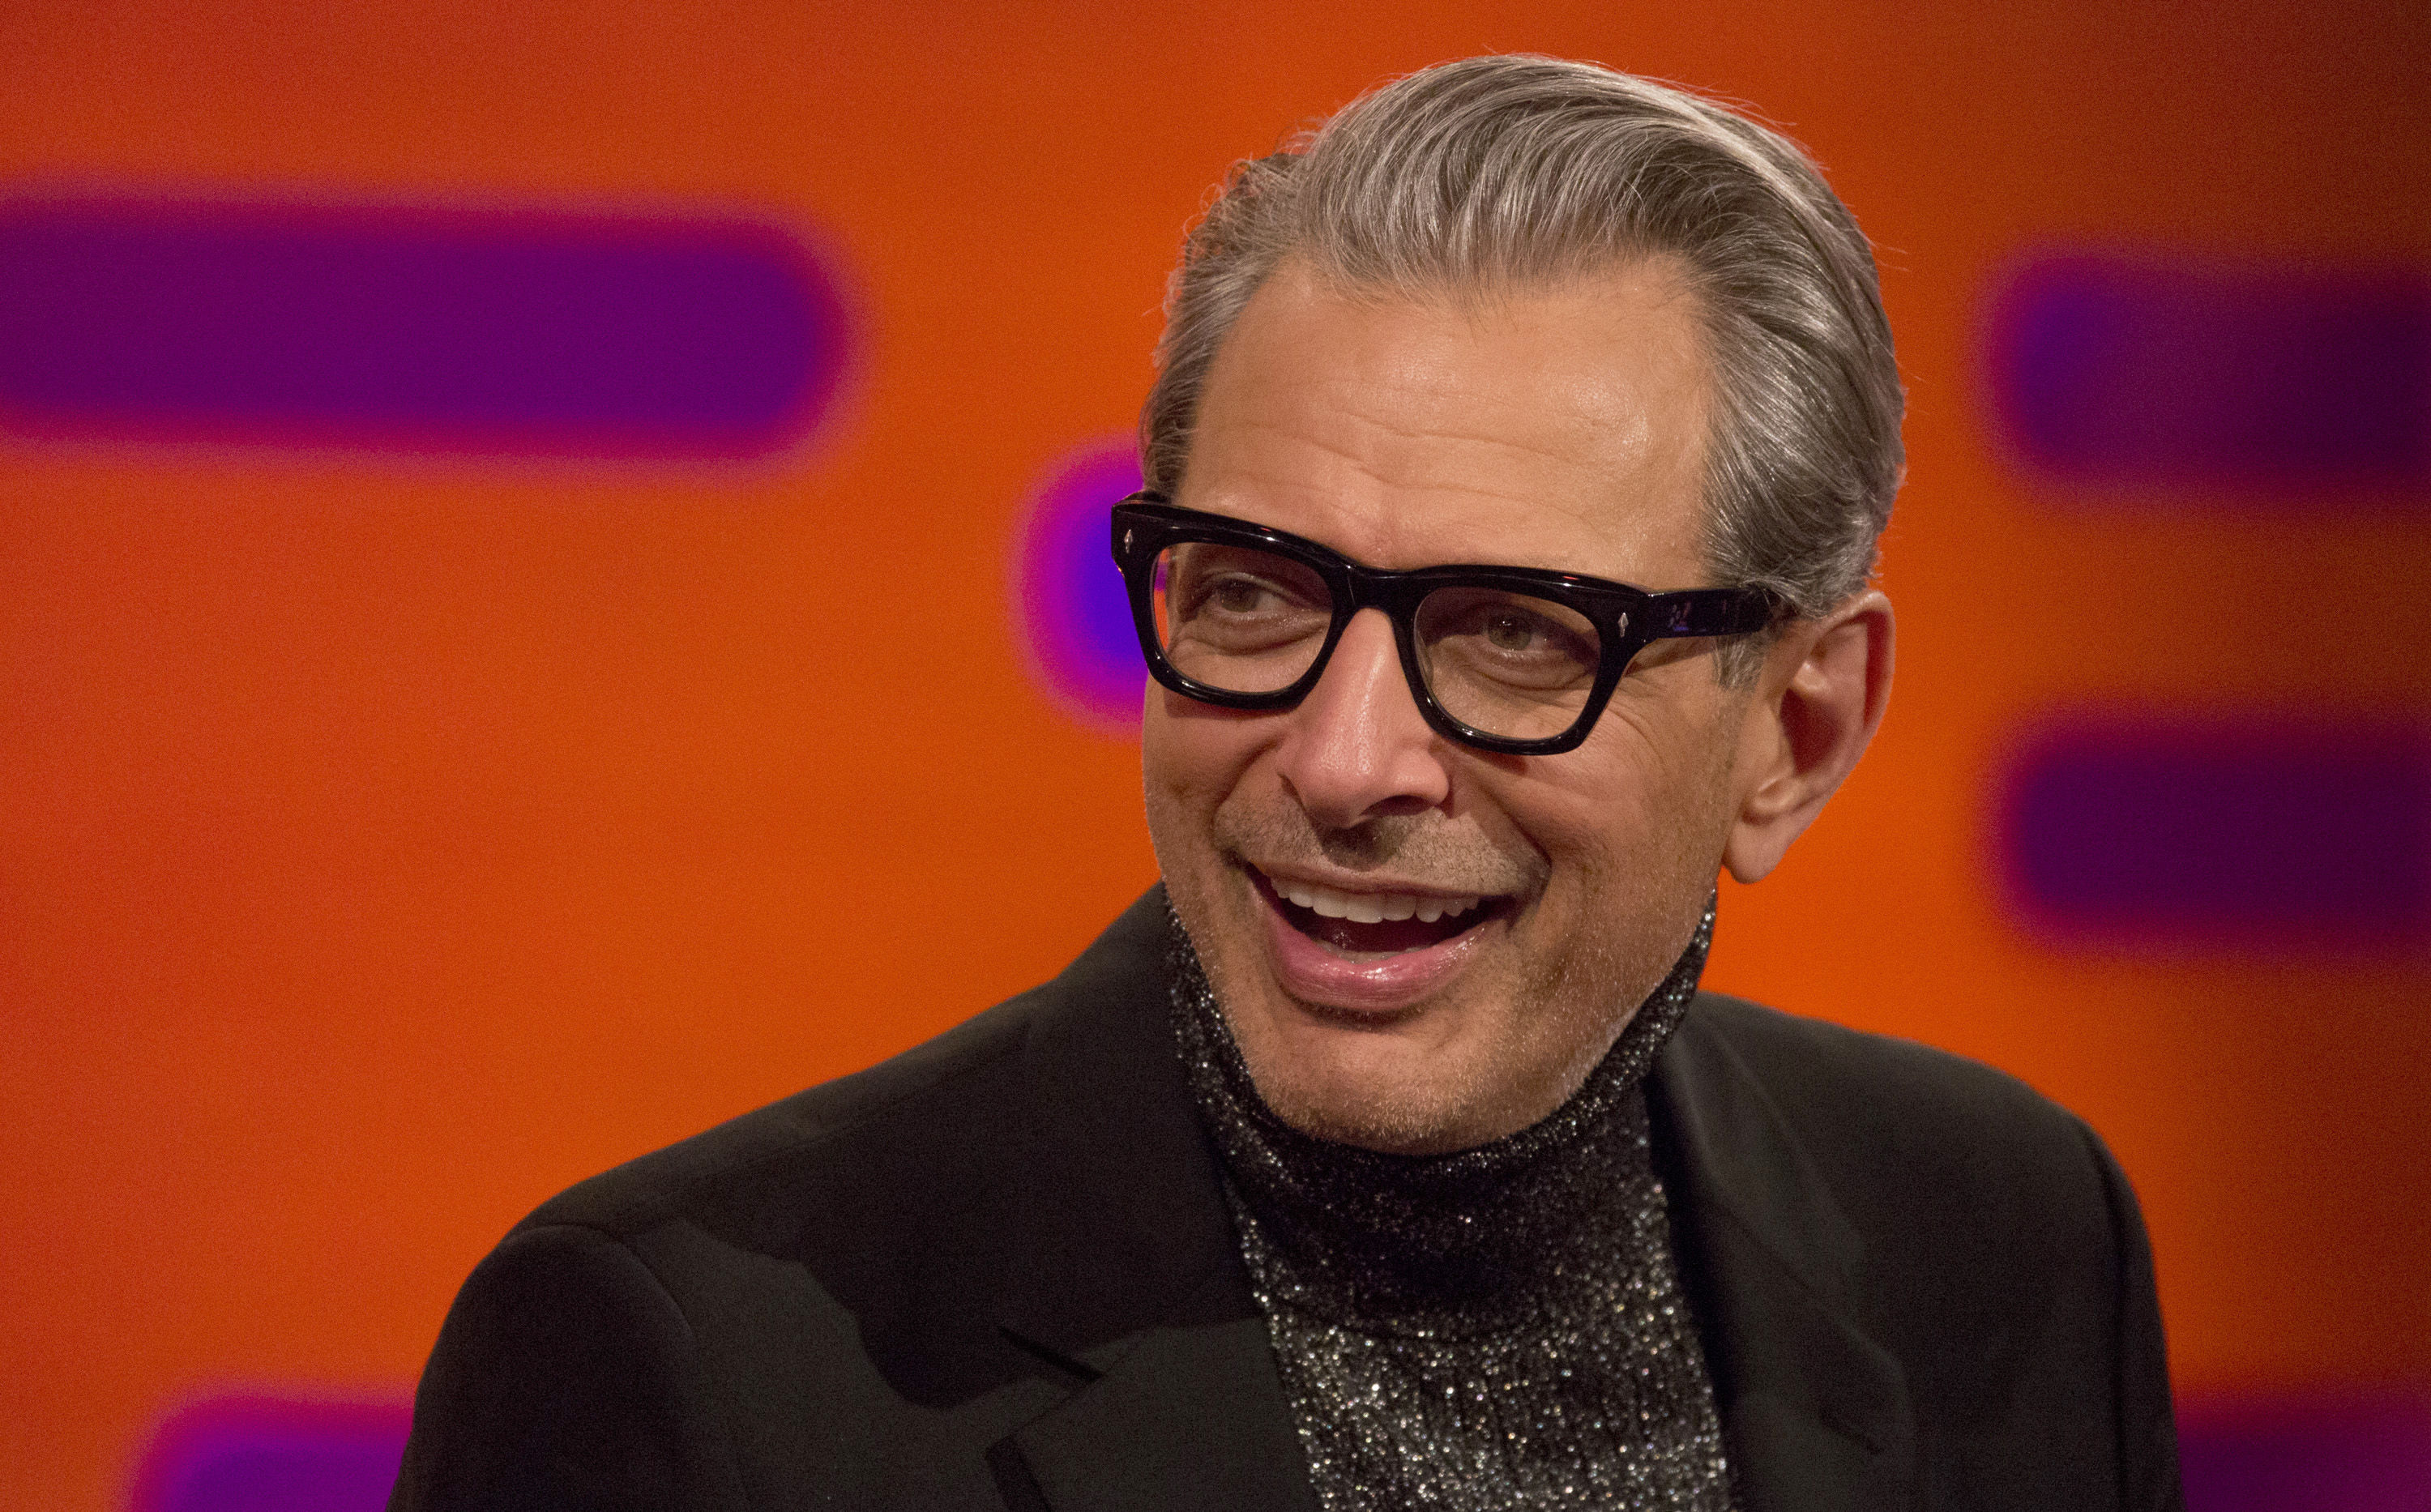 Jeff Goldblum wants to collaborate with Migos, and this is sweet, sweet music to our ears